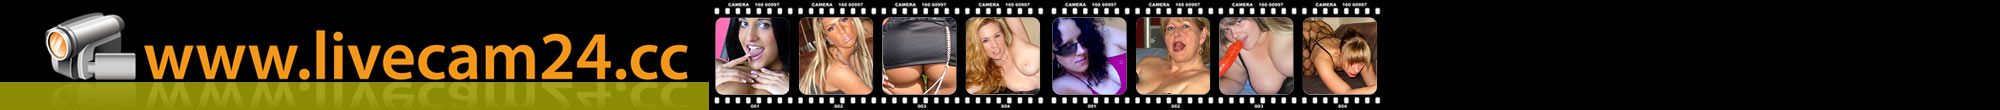 DevoteMaria, 39 Jahre, BH: 105 E - webcam -  - Video Web Cams Live Sex Chat von heissen Girls